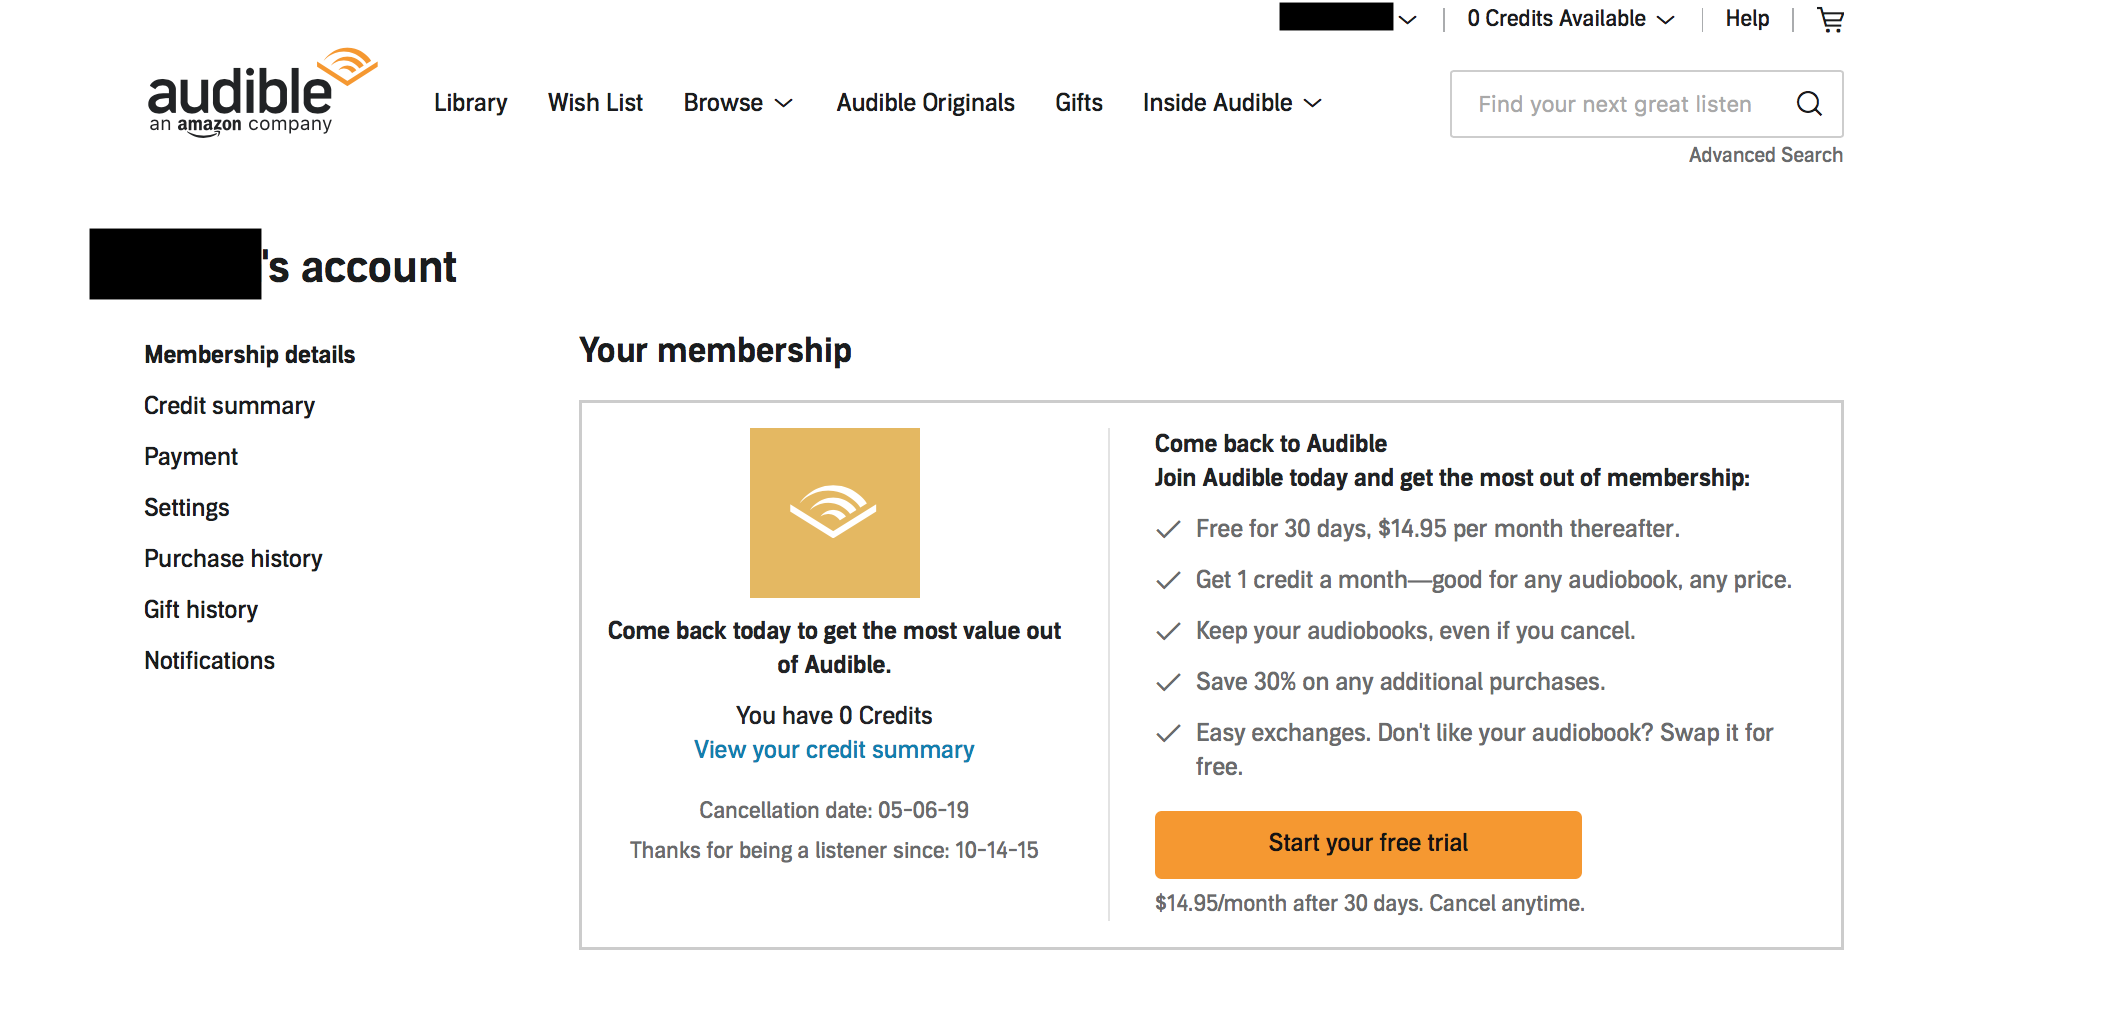 How To Cancel Audible: Your Guide With Screenshots | TBR